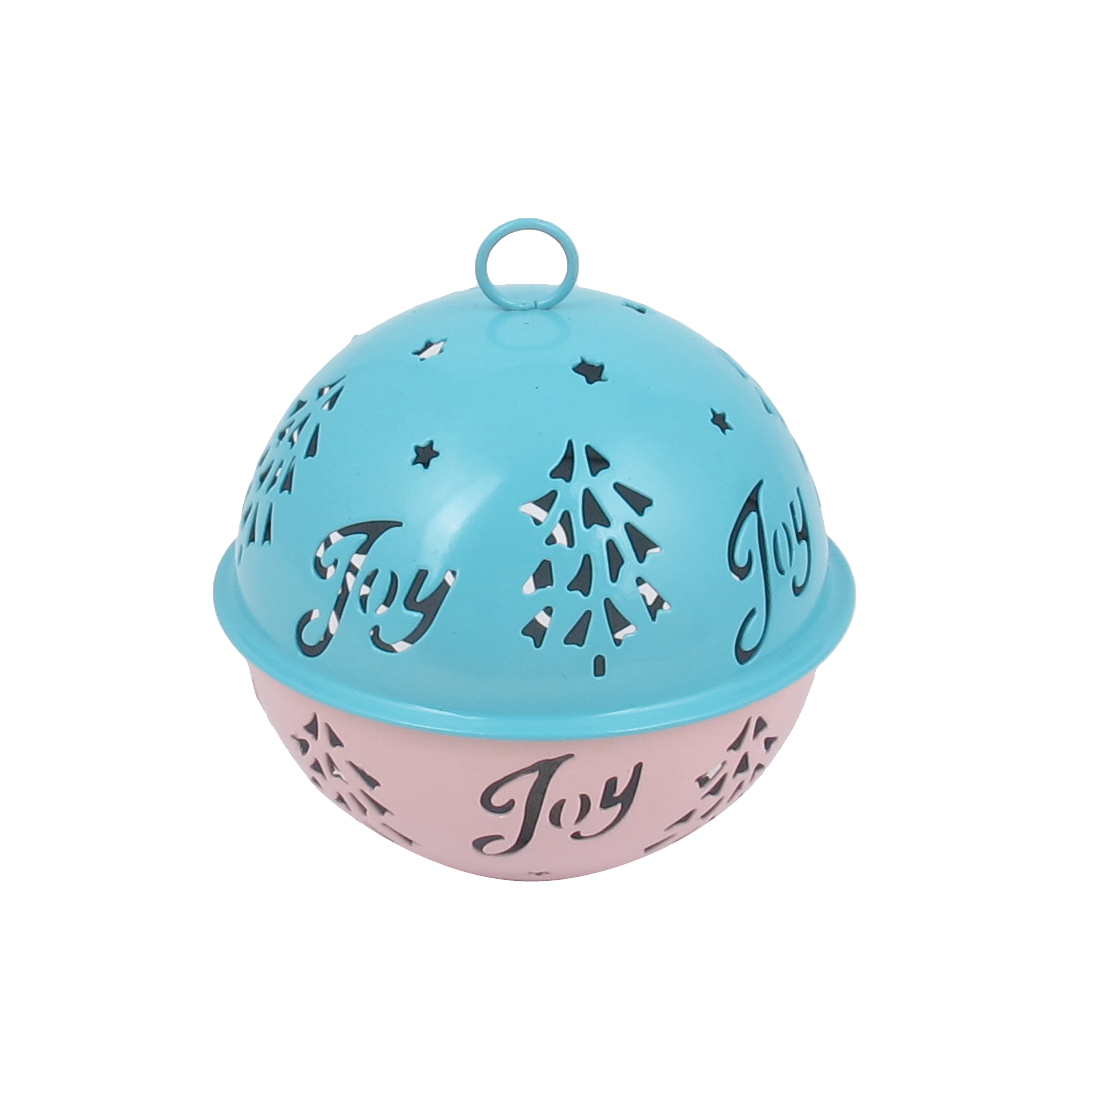 85mm Diameter Blue Pink Metal Christmas Tree Detail Ball Shape Hollow Out Design Jingle Ring Bell Ornament for Celebration Case Party